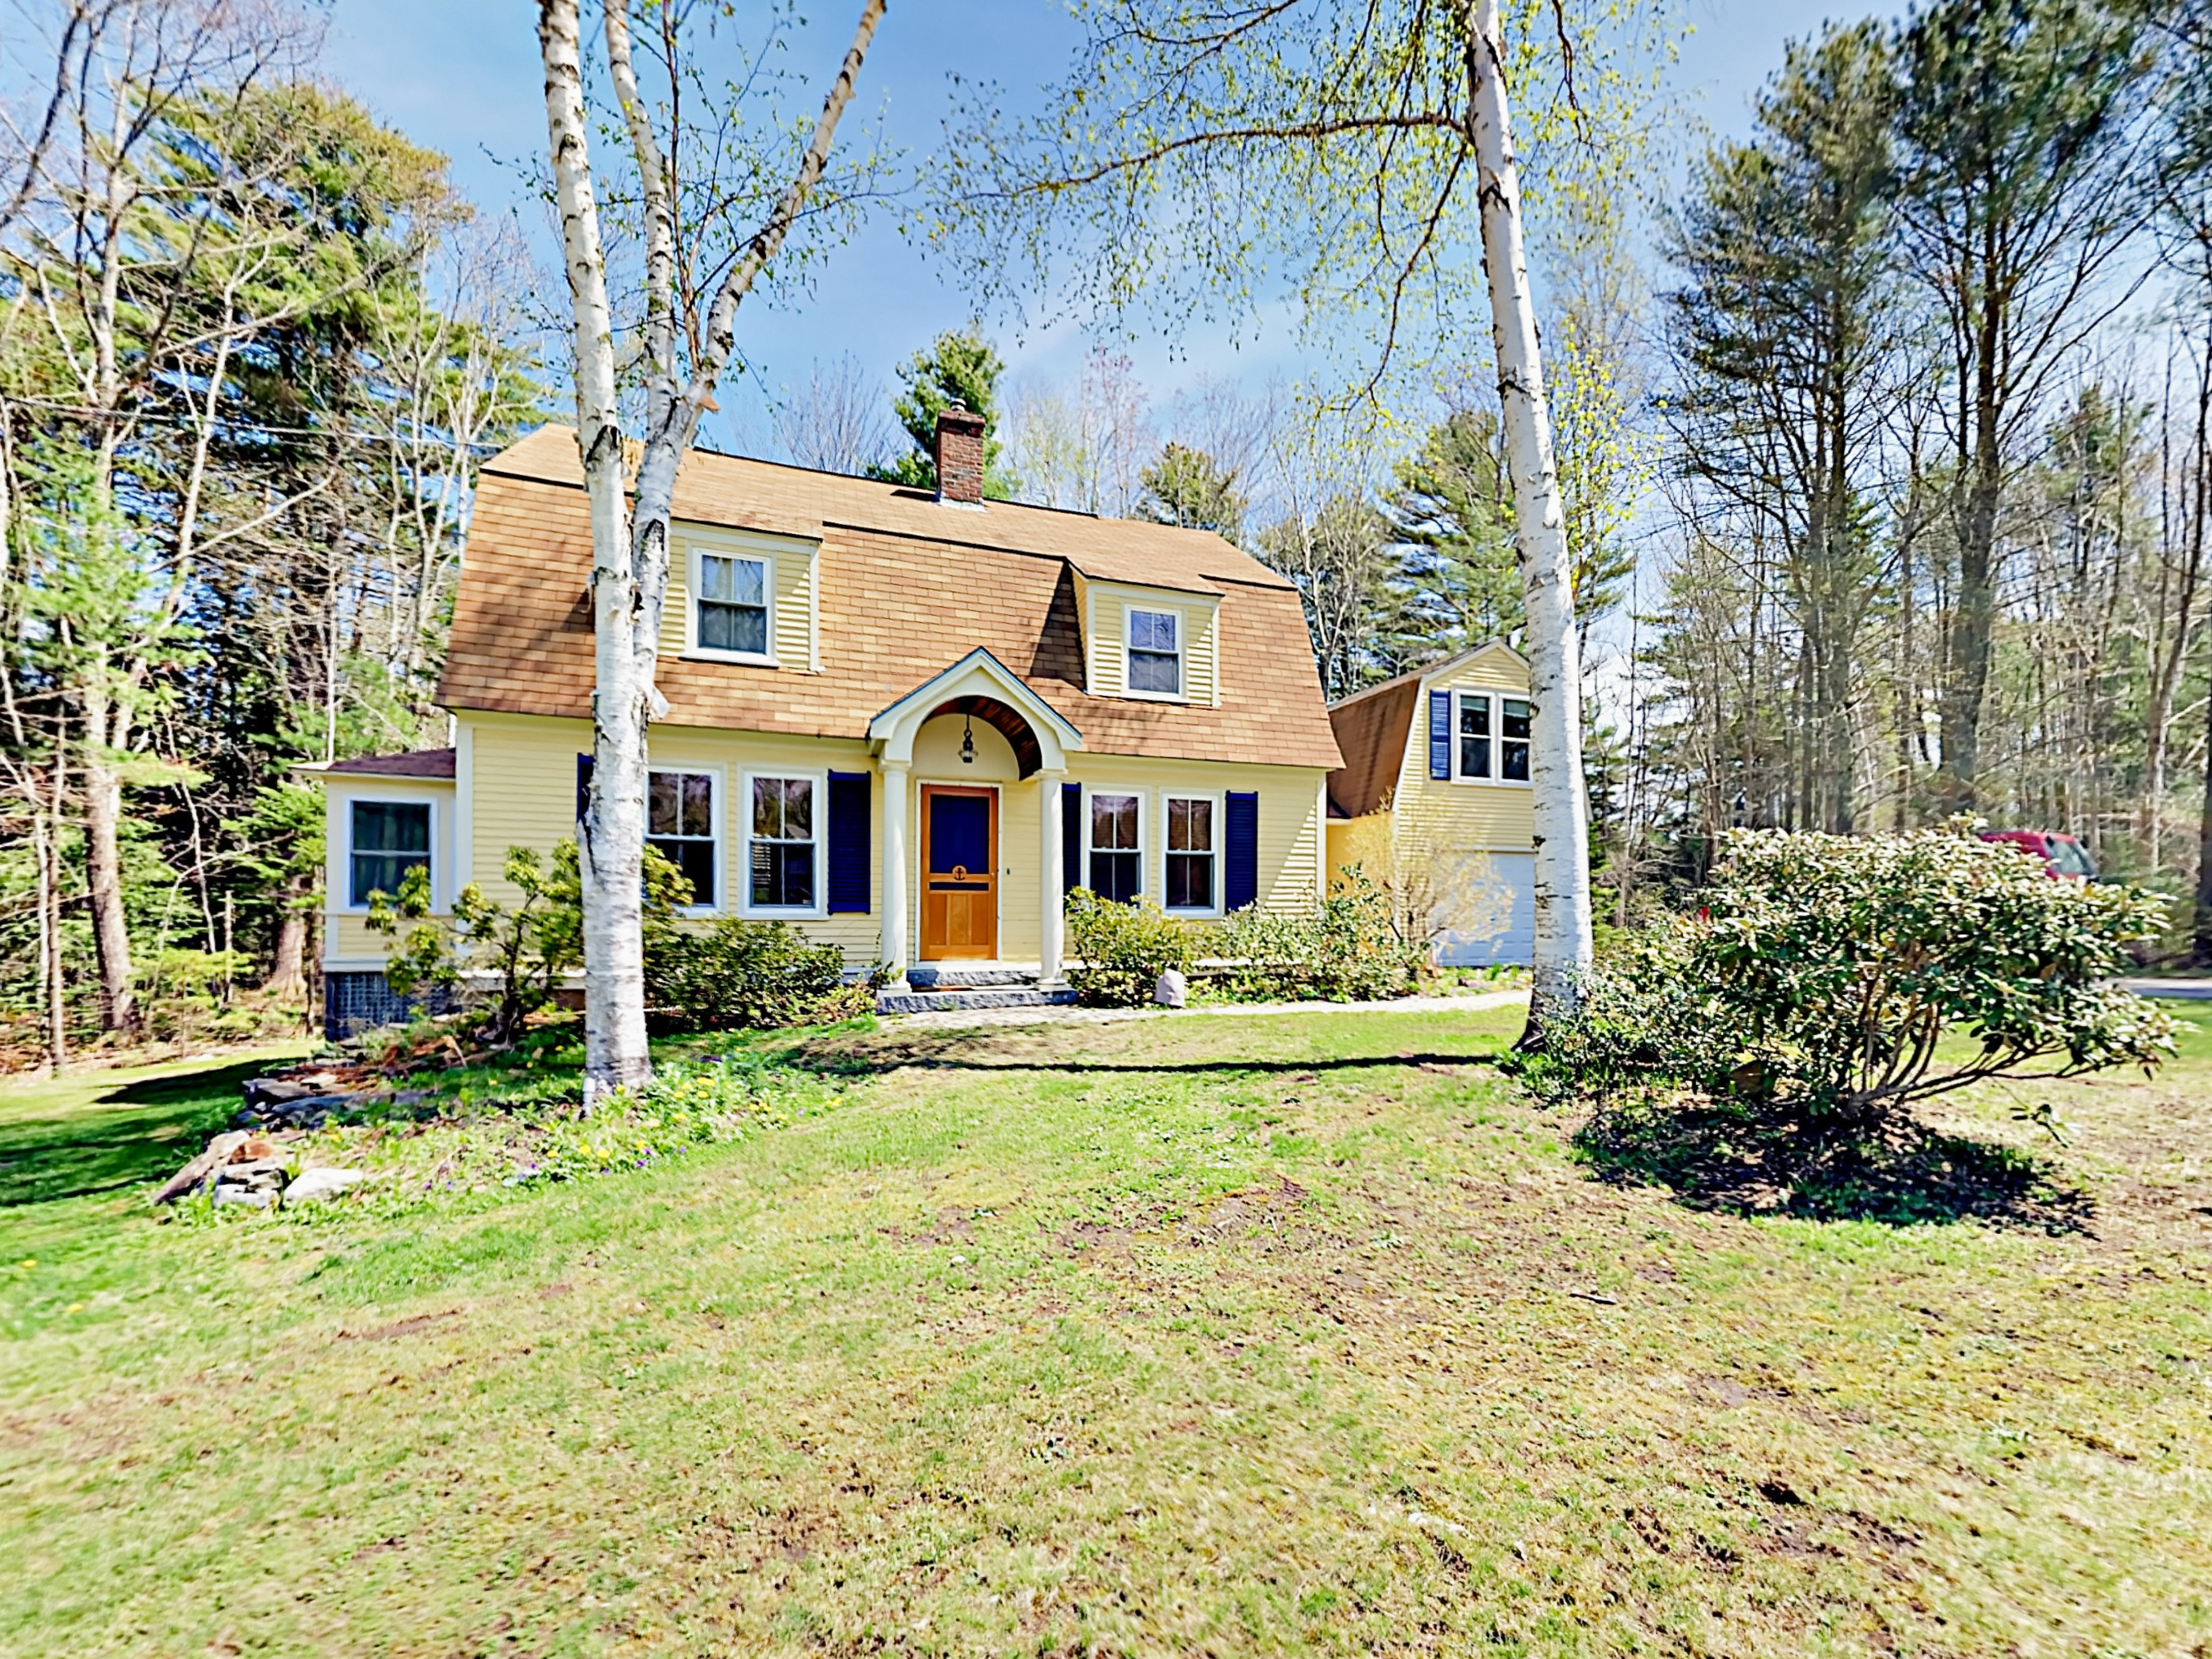 Kennebunkport ME Vacation Rental Welcome to Kennebunkport!